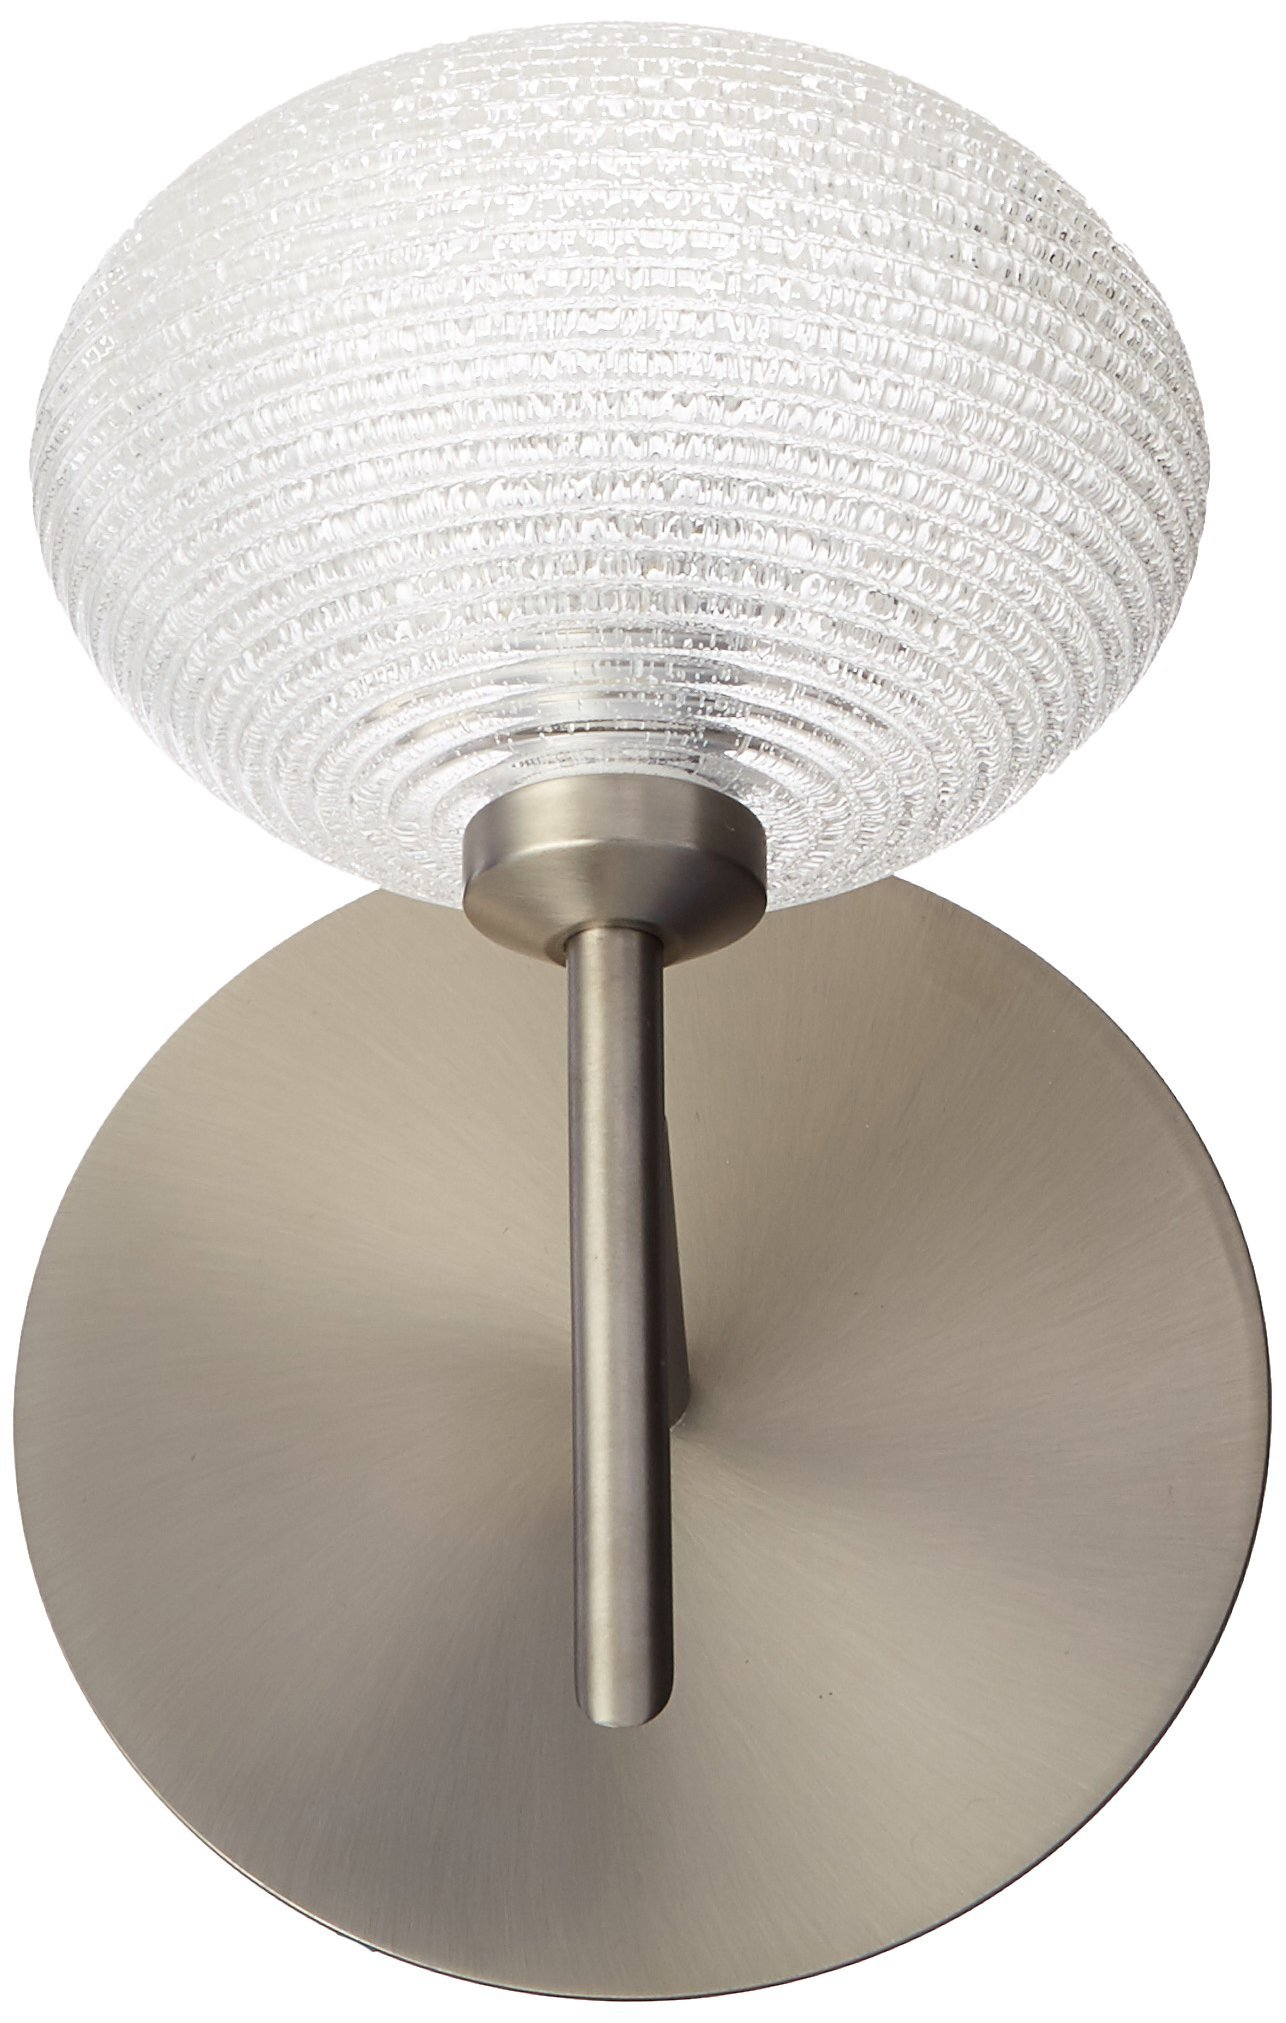 Besa Lighting 1SW-5612GL-SN 1X40W G9 Lasso Wall Sconce with Glitter Glass, Satin Nickel Finish